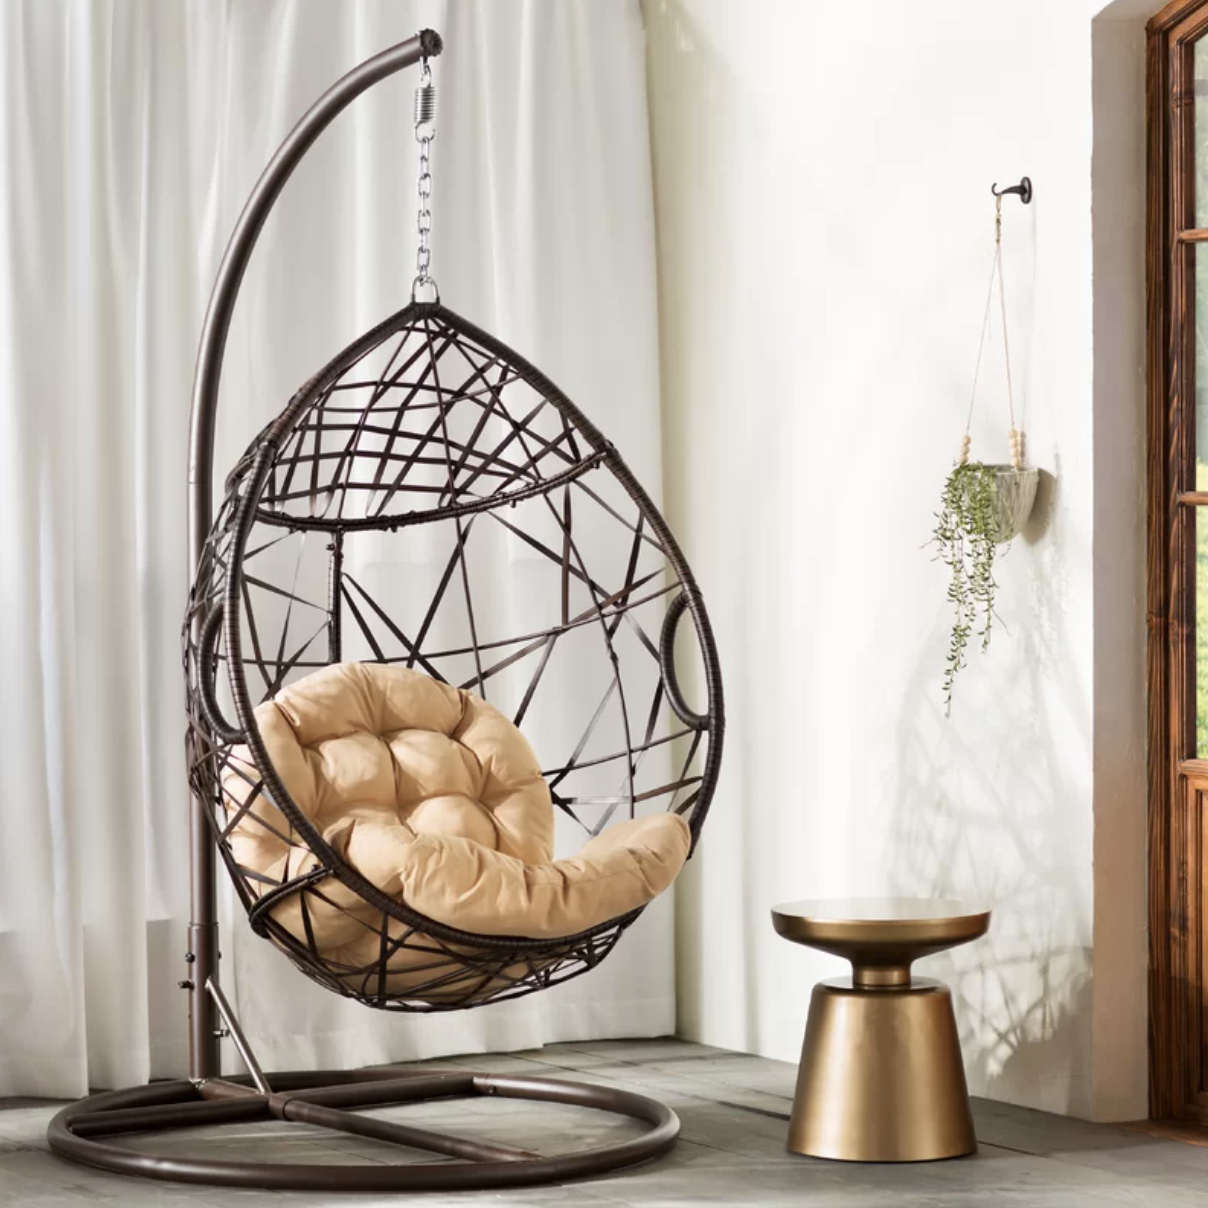 Anner Tear Drop Swing Chair with Stand, Target Southport Patio Egg Chair, Target Southport Patio Egg Chair dupes, affordable dupes for the Target Southport Patio Egg Chair,egg chair inspiration, egg chair home ideas, egg chairs, wicker egg chairs, hanging egg chairs, target dupes, target furniture dupes, target patio furniture, Red Soles and Red Wine